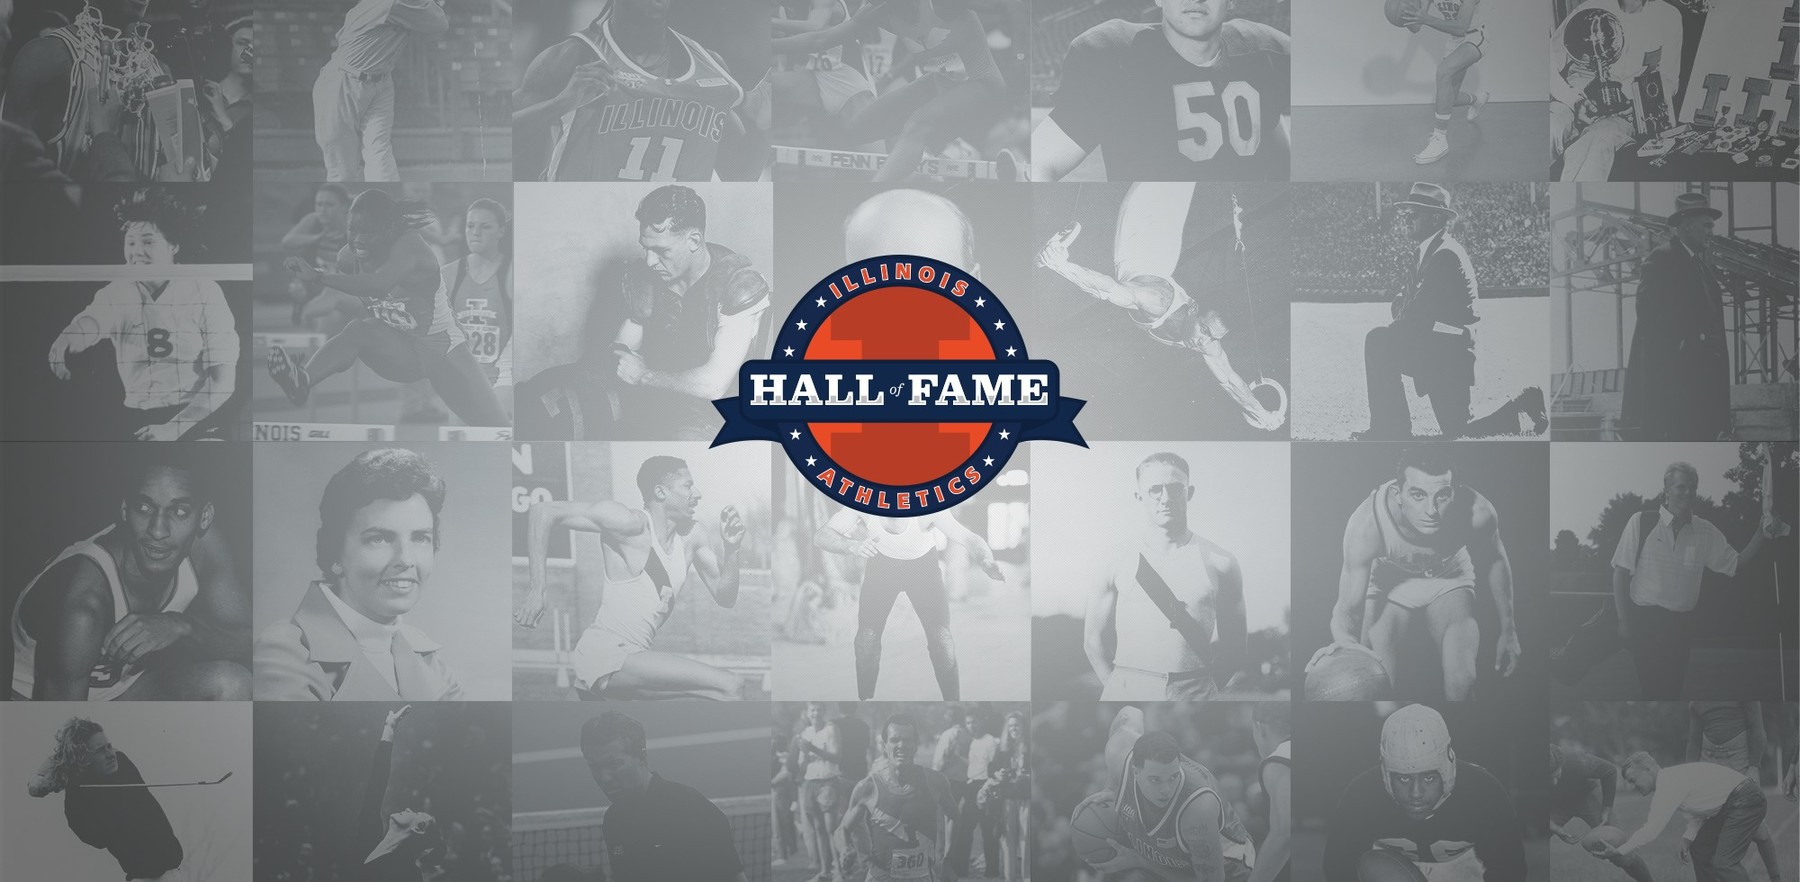 Hall of Fame logo by the Division of Intercollegiate Athletics